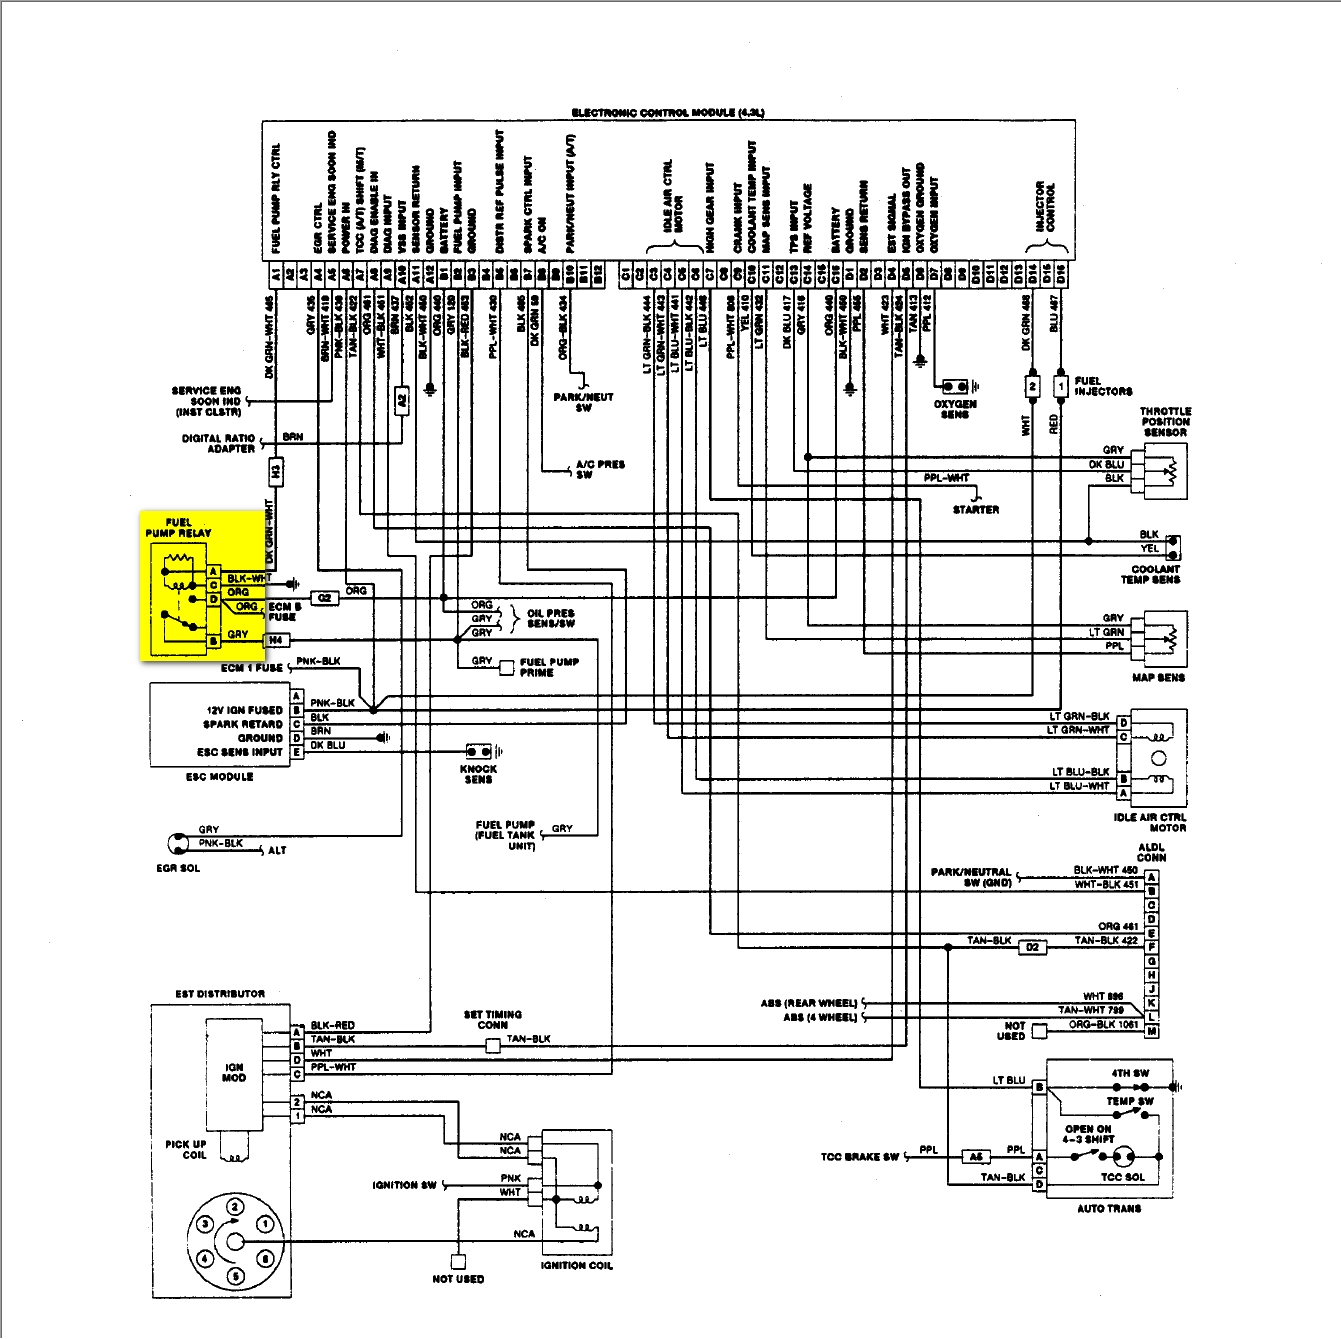 hight resolution of chevrolet cruze diagram wiring schematic 91 chevy astro van where is the fuel pump relay